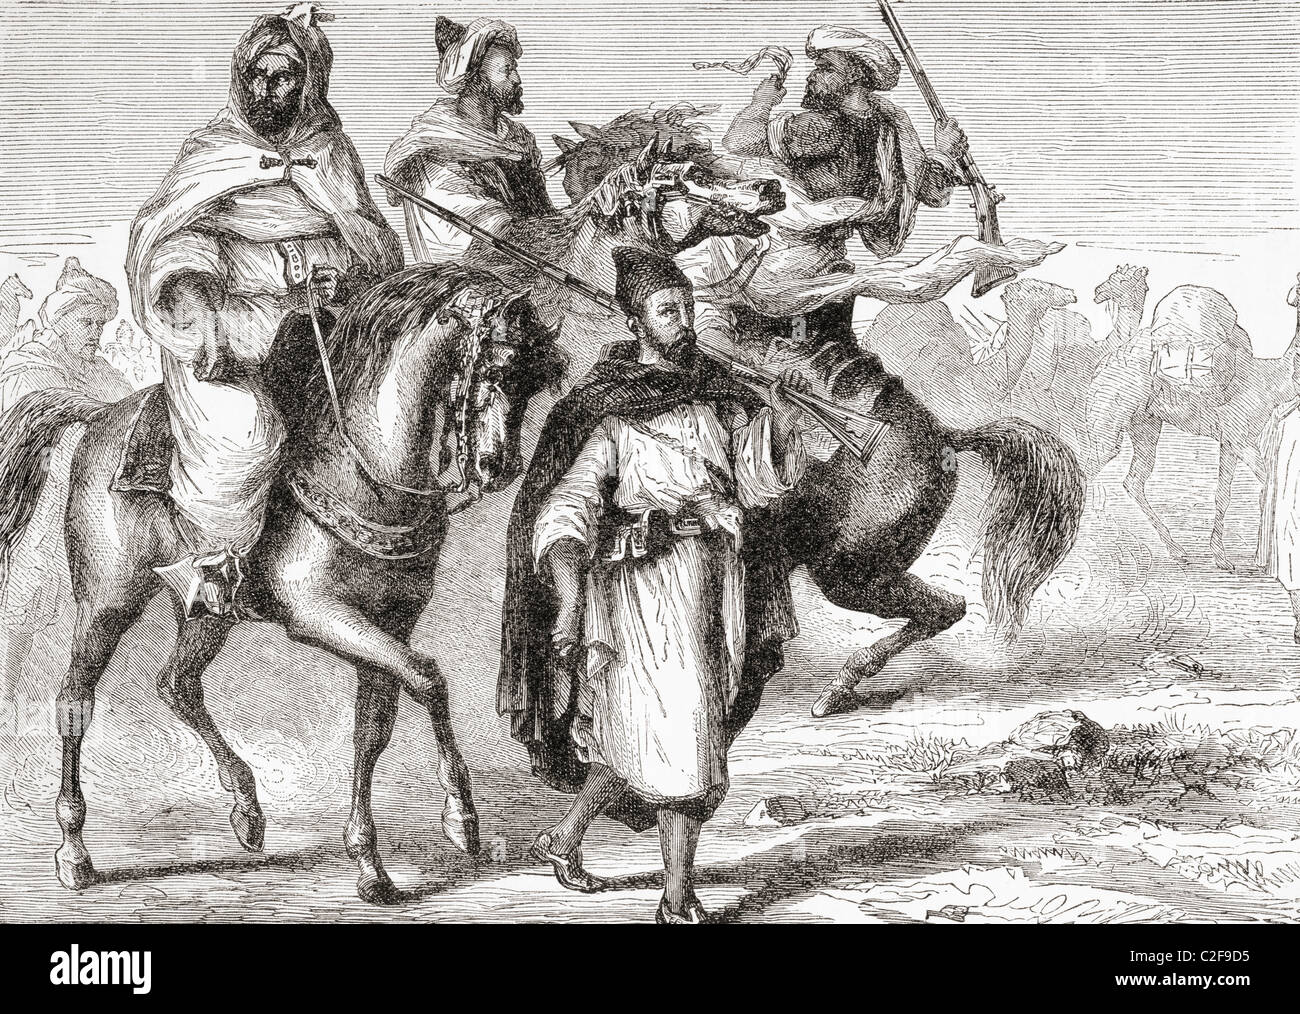 Moors in the 19th century. - Stock Image